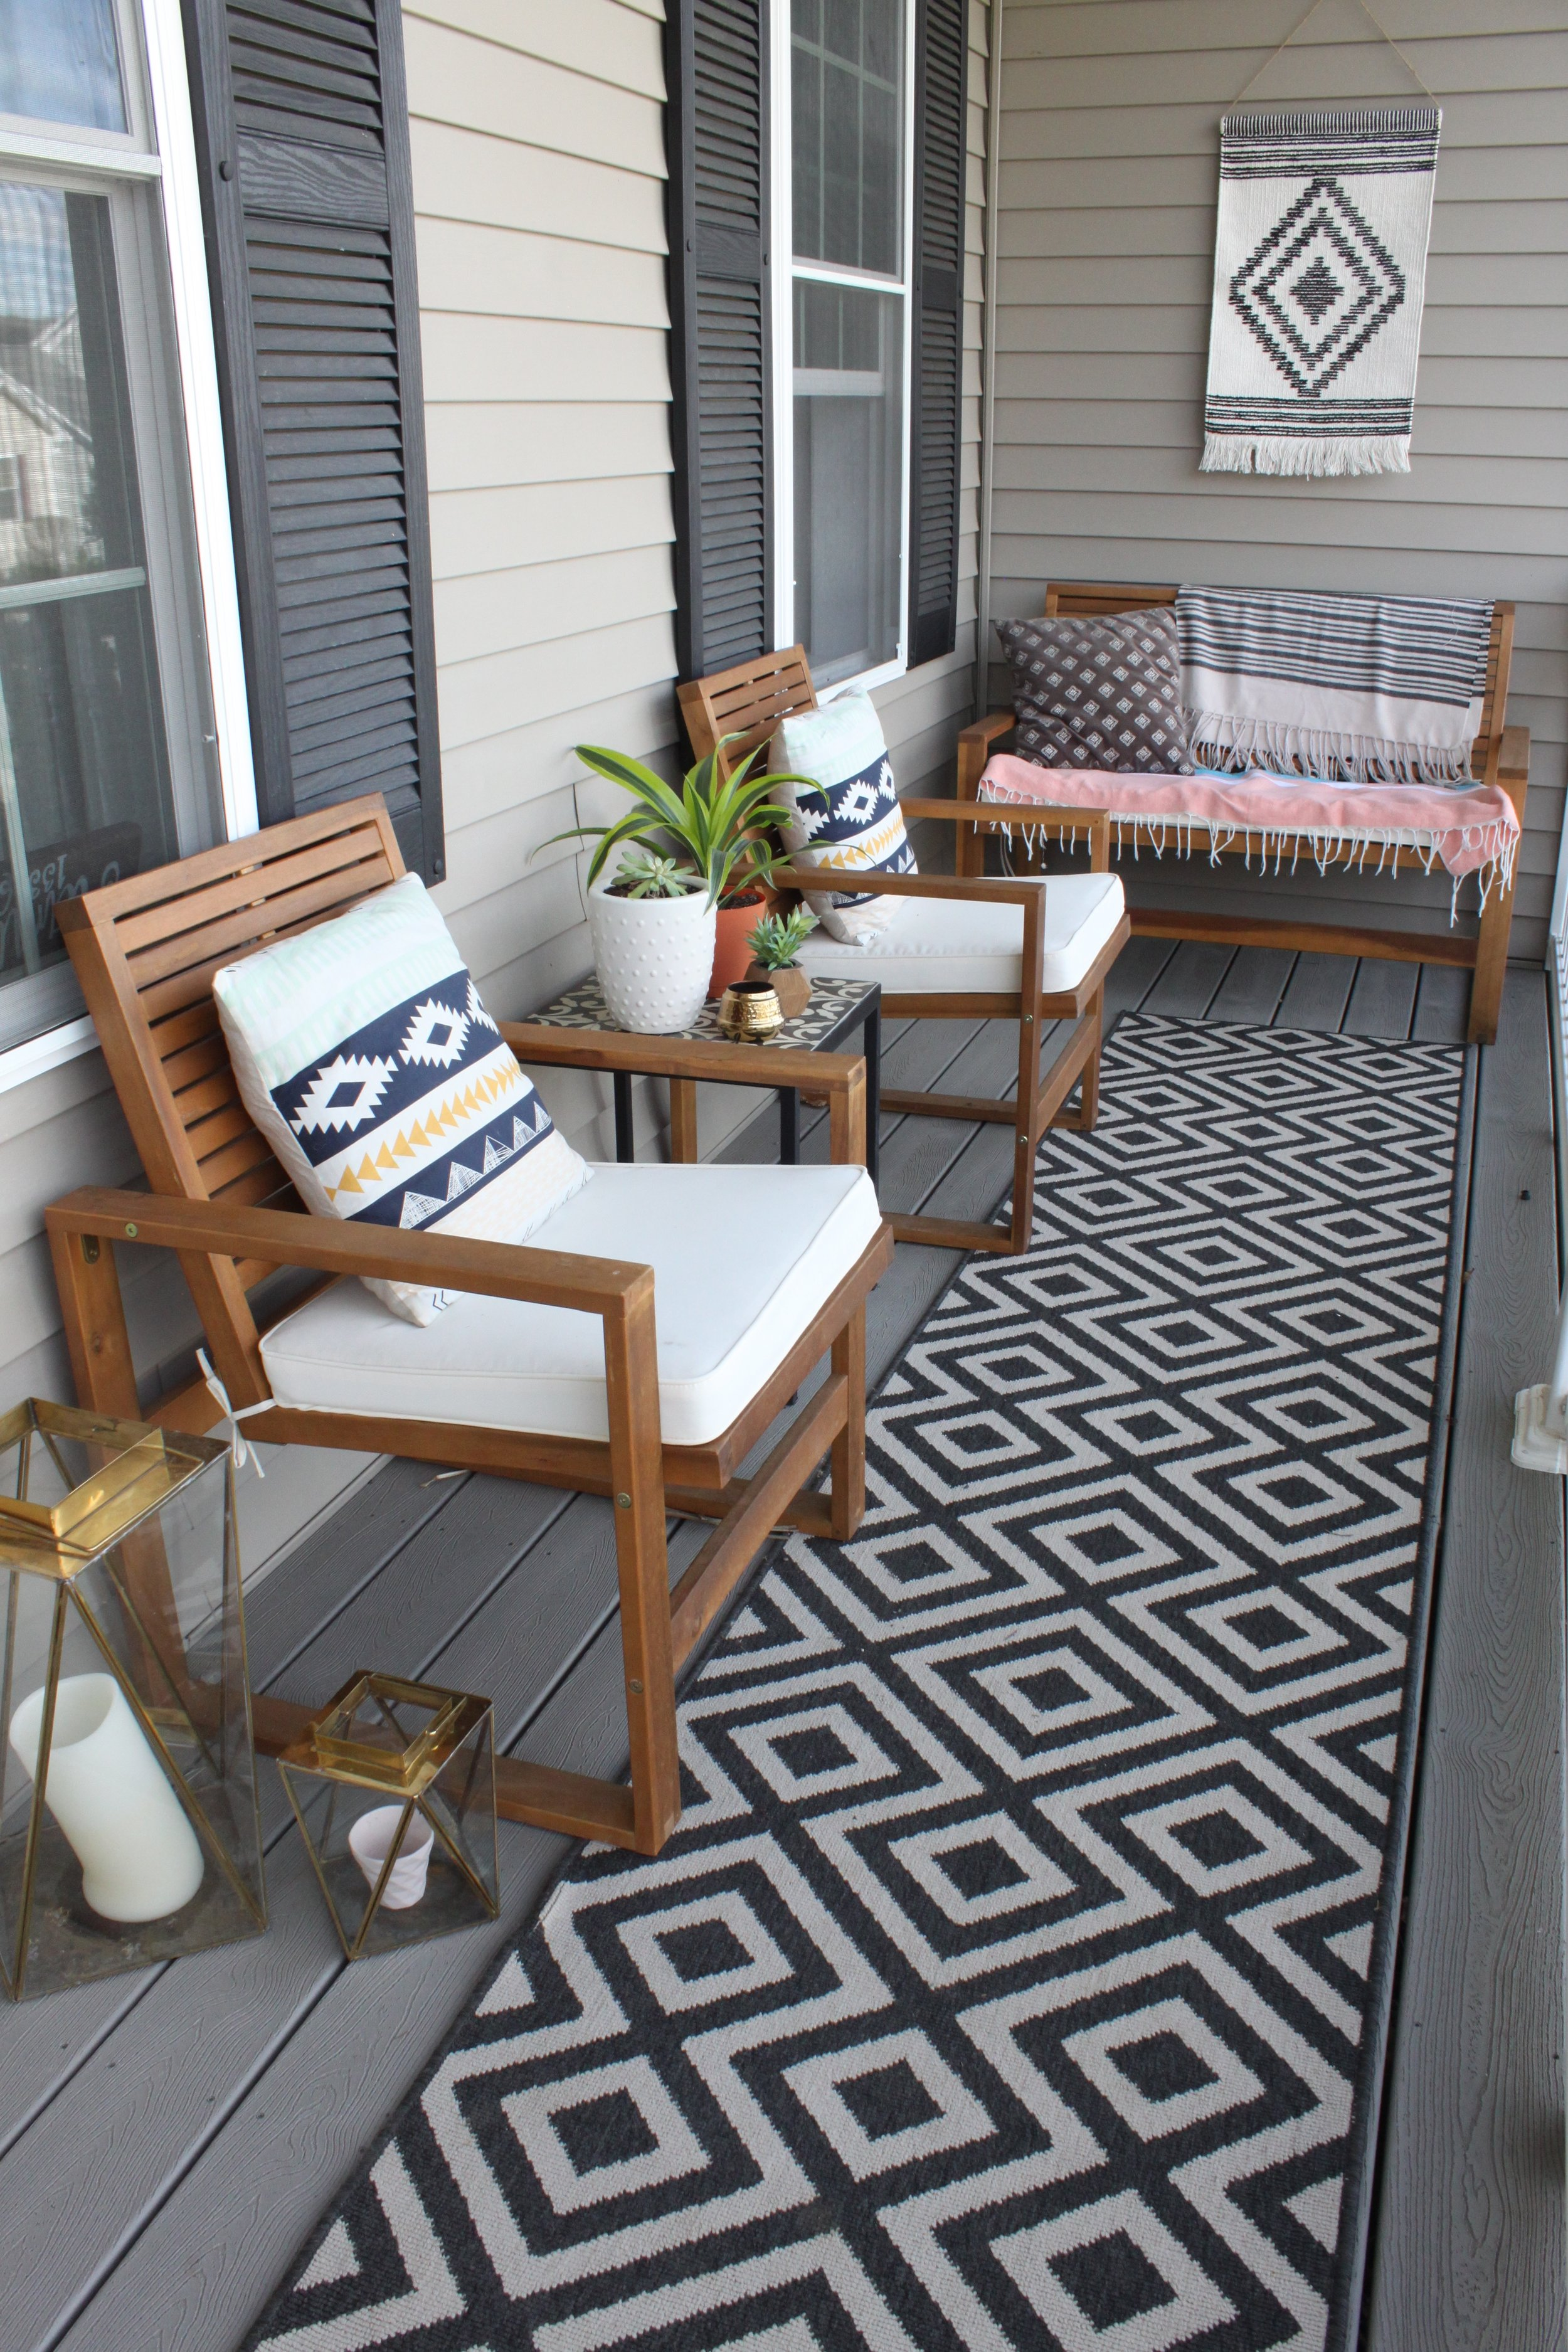 Porch with chairs, bench, decorative rug, hanging artwork